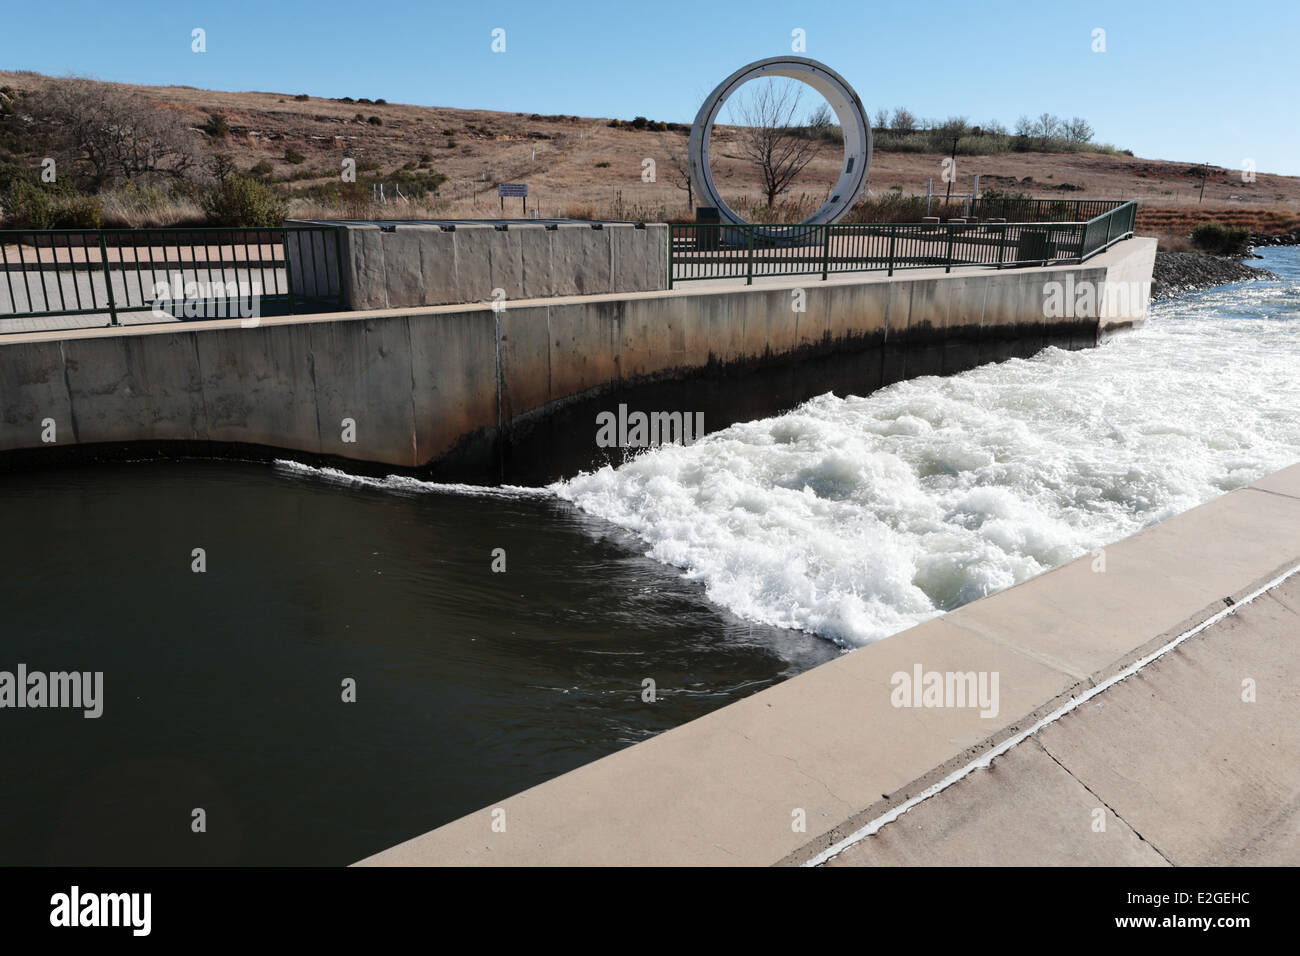 lesotho water project governance The lesotho highlands development authority expects the r112-billion second phase of the lesotho highlands water project to be completed by 2023, the project's executive manager, mark matchett, announced on monday the massive joint project between south africa and land-locked lesotho will.